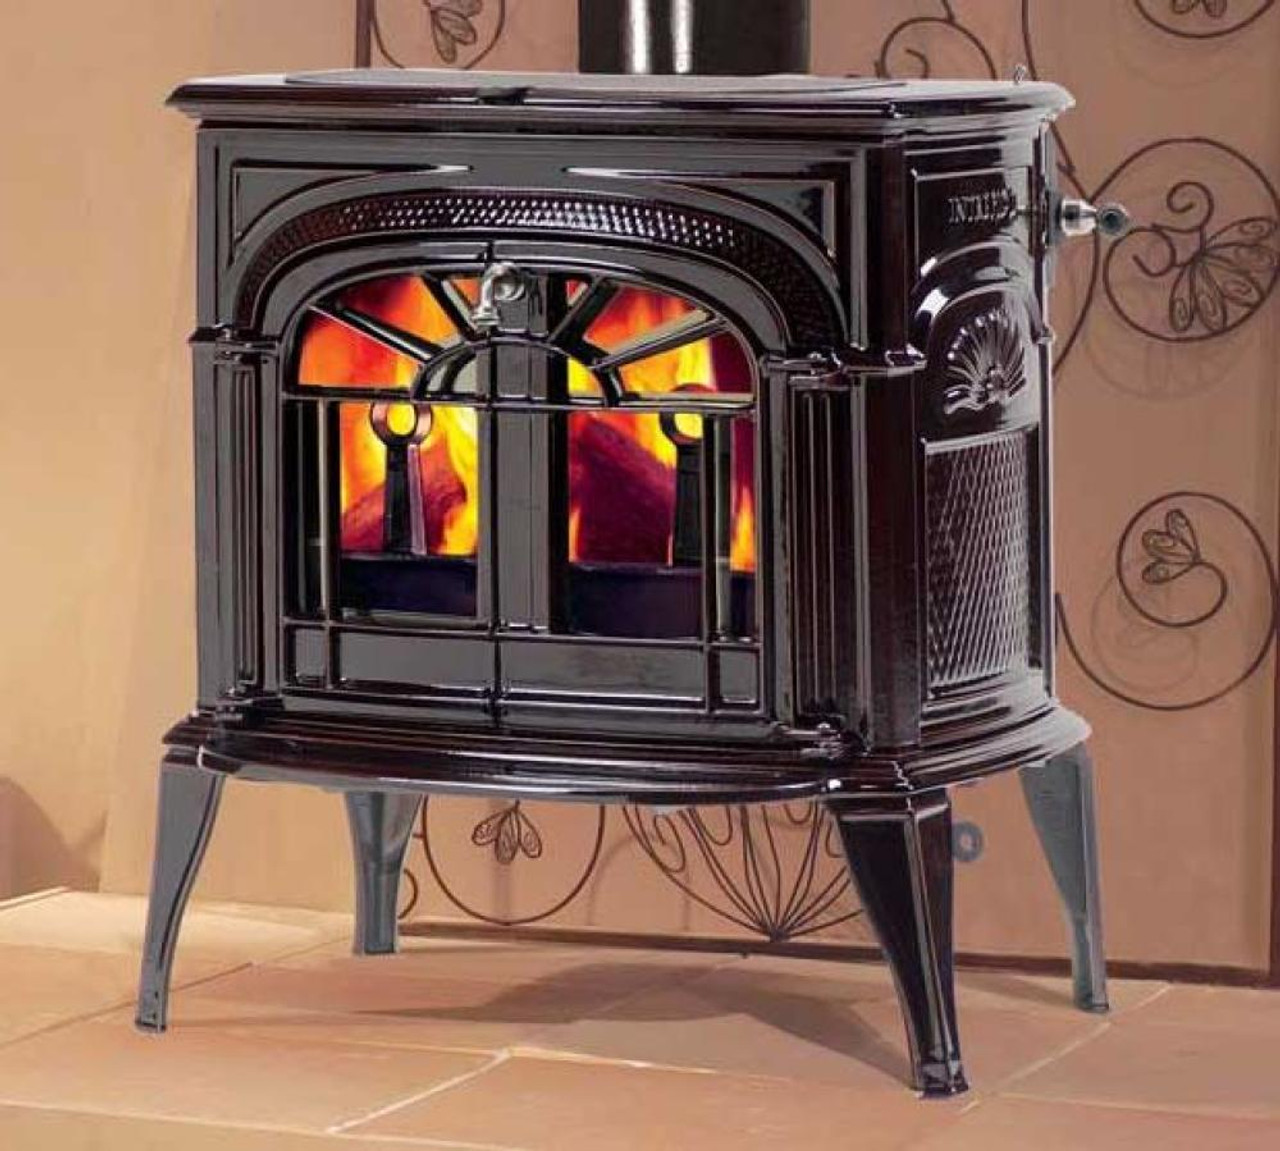 medium resolution of vermont castings intrepid direct vent gas stove embers fireplaces outdoor living